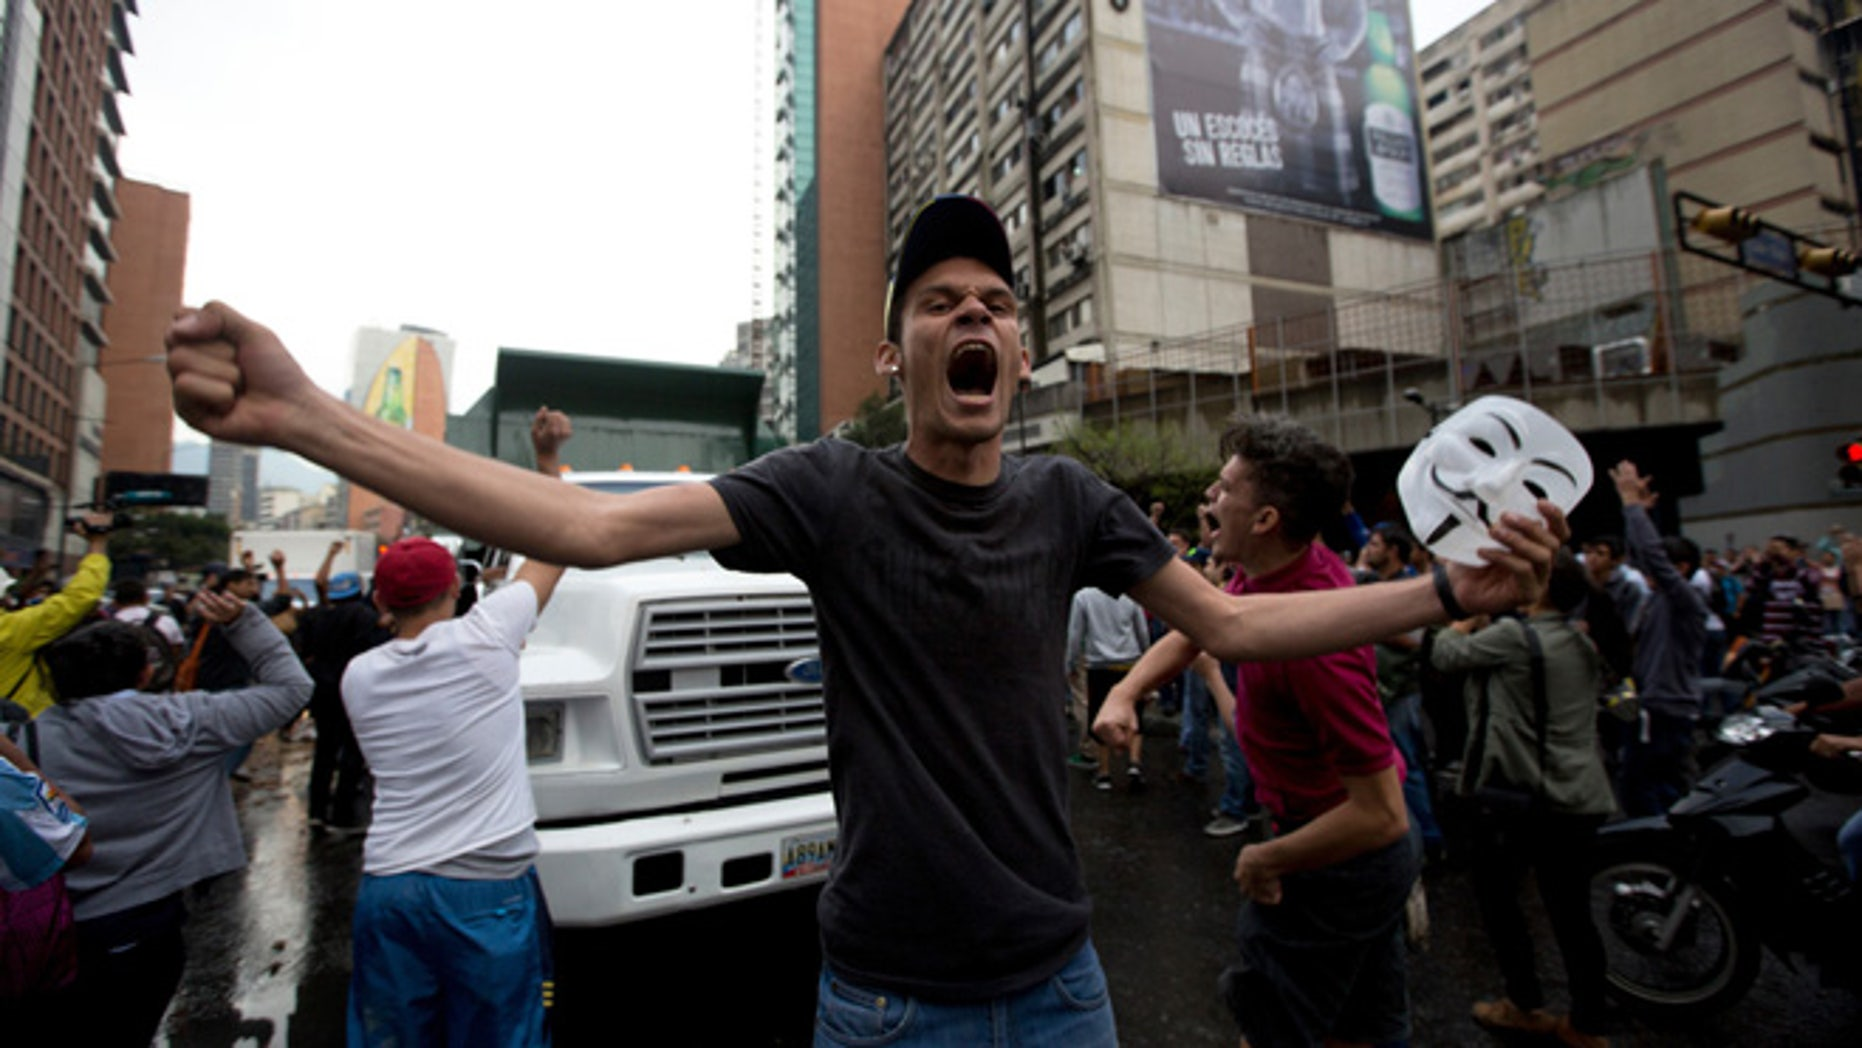 A demonstrator shouts slogans against Venezuela's President Nicolas Maduro as protesters block a road in Caracas, Venezuela, Thursday, Feb. 12, 2015. Venezuelans staged dueling marches to mark the anniversary of last year's bloody protest movement that resulted in more than 40 people being killed, including both government supporters and opponents. Dozens of protesters remain jailed, while the social issues they railed against last year- a faltering economy, widespread shortages and pervasive violent crime - have only gotten worse. (AP Photo/Fernando Llano)